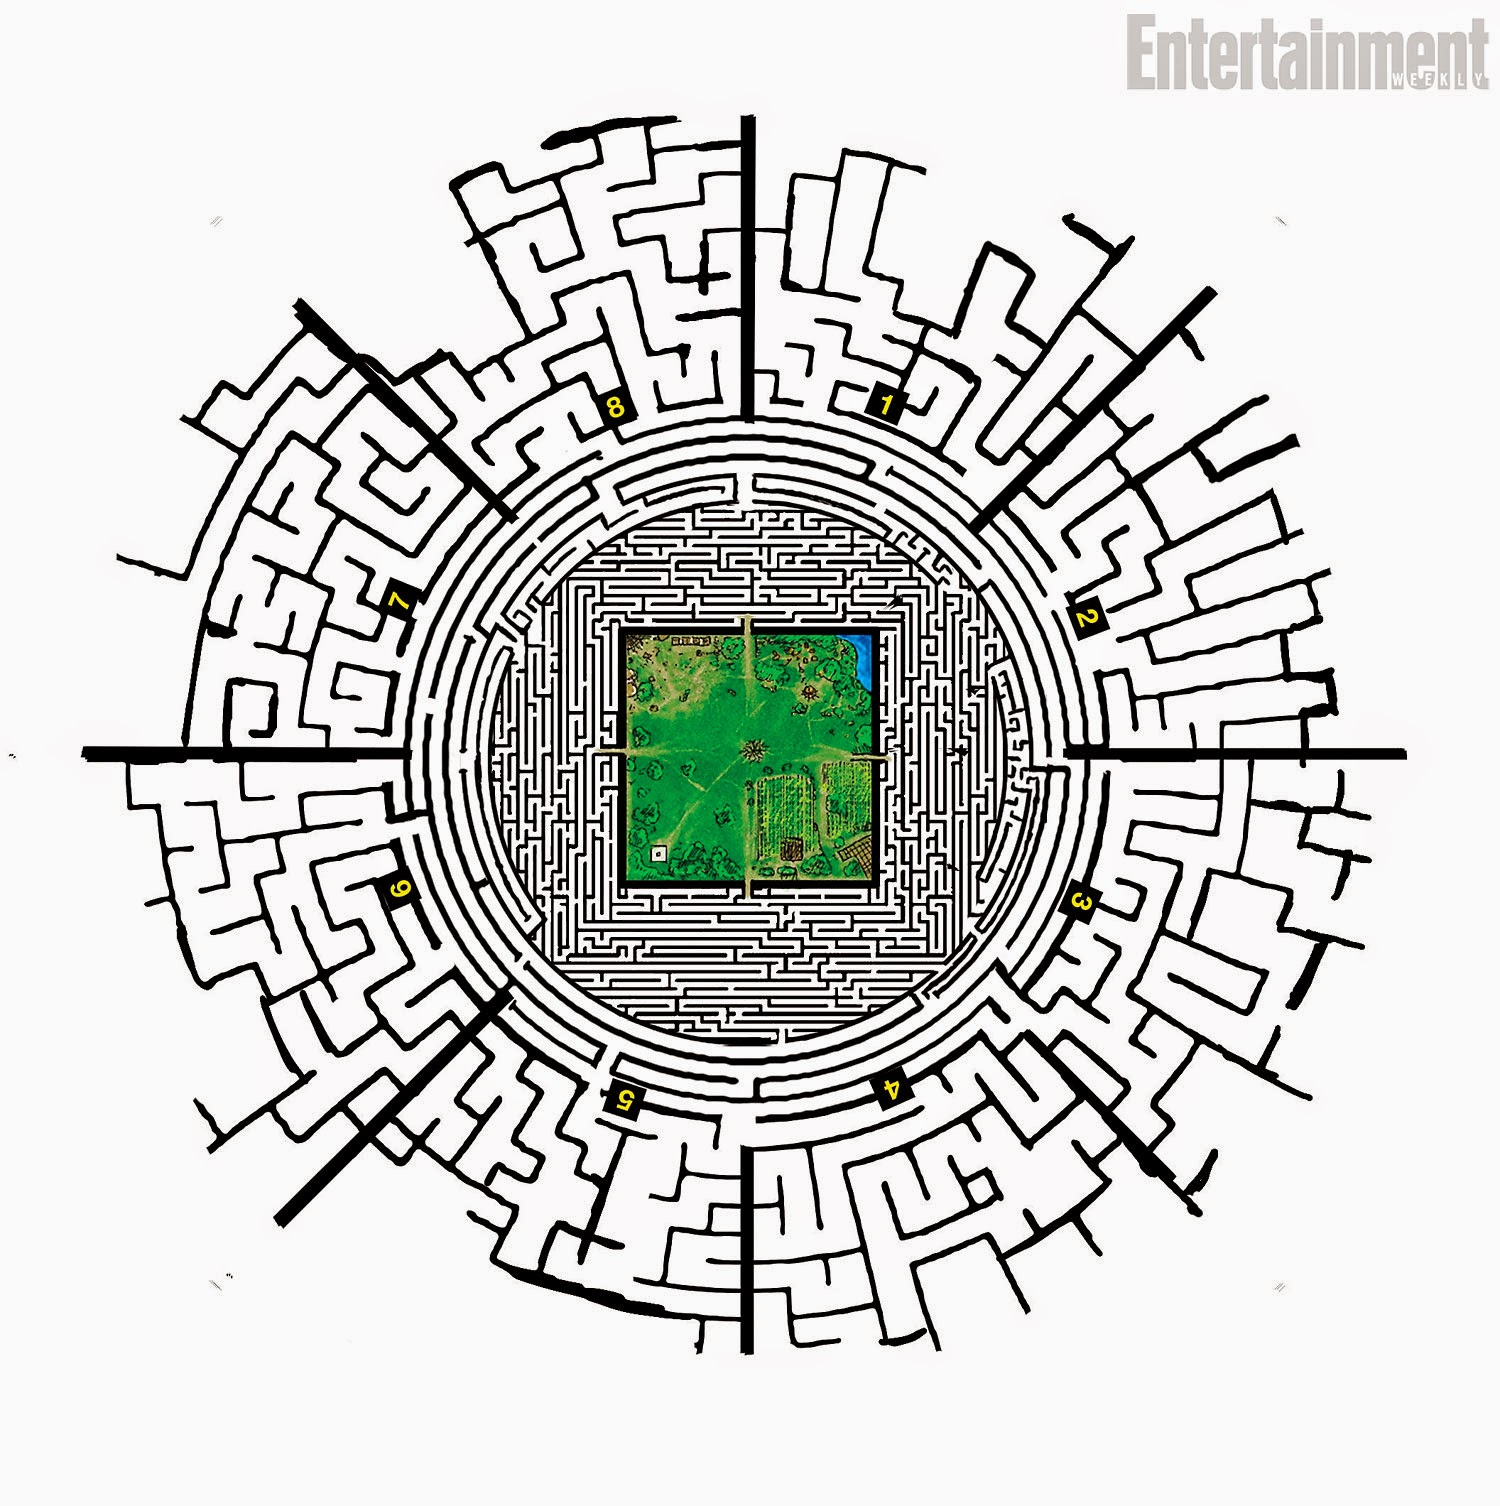 The Maze Runner Blog: TMR Featured in Entertainment Weekly